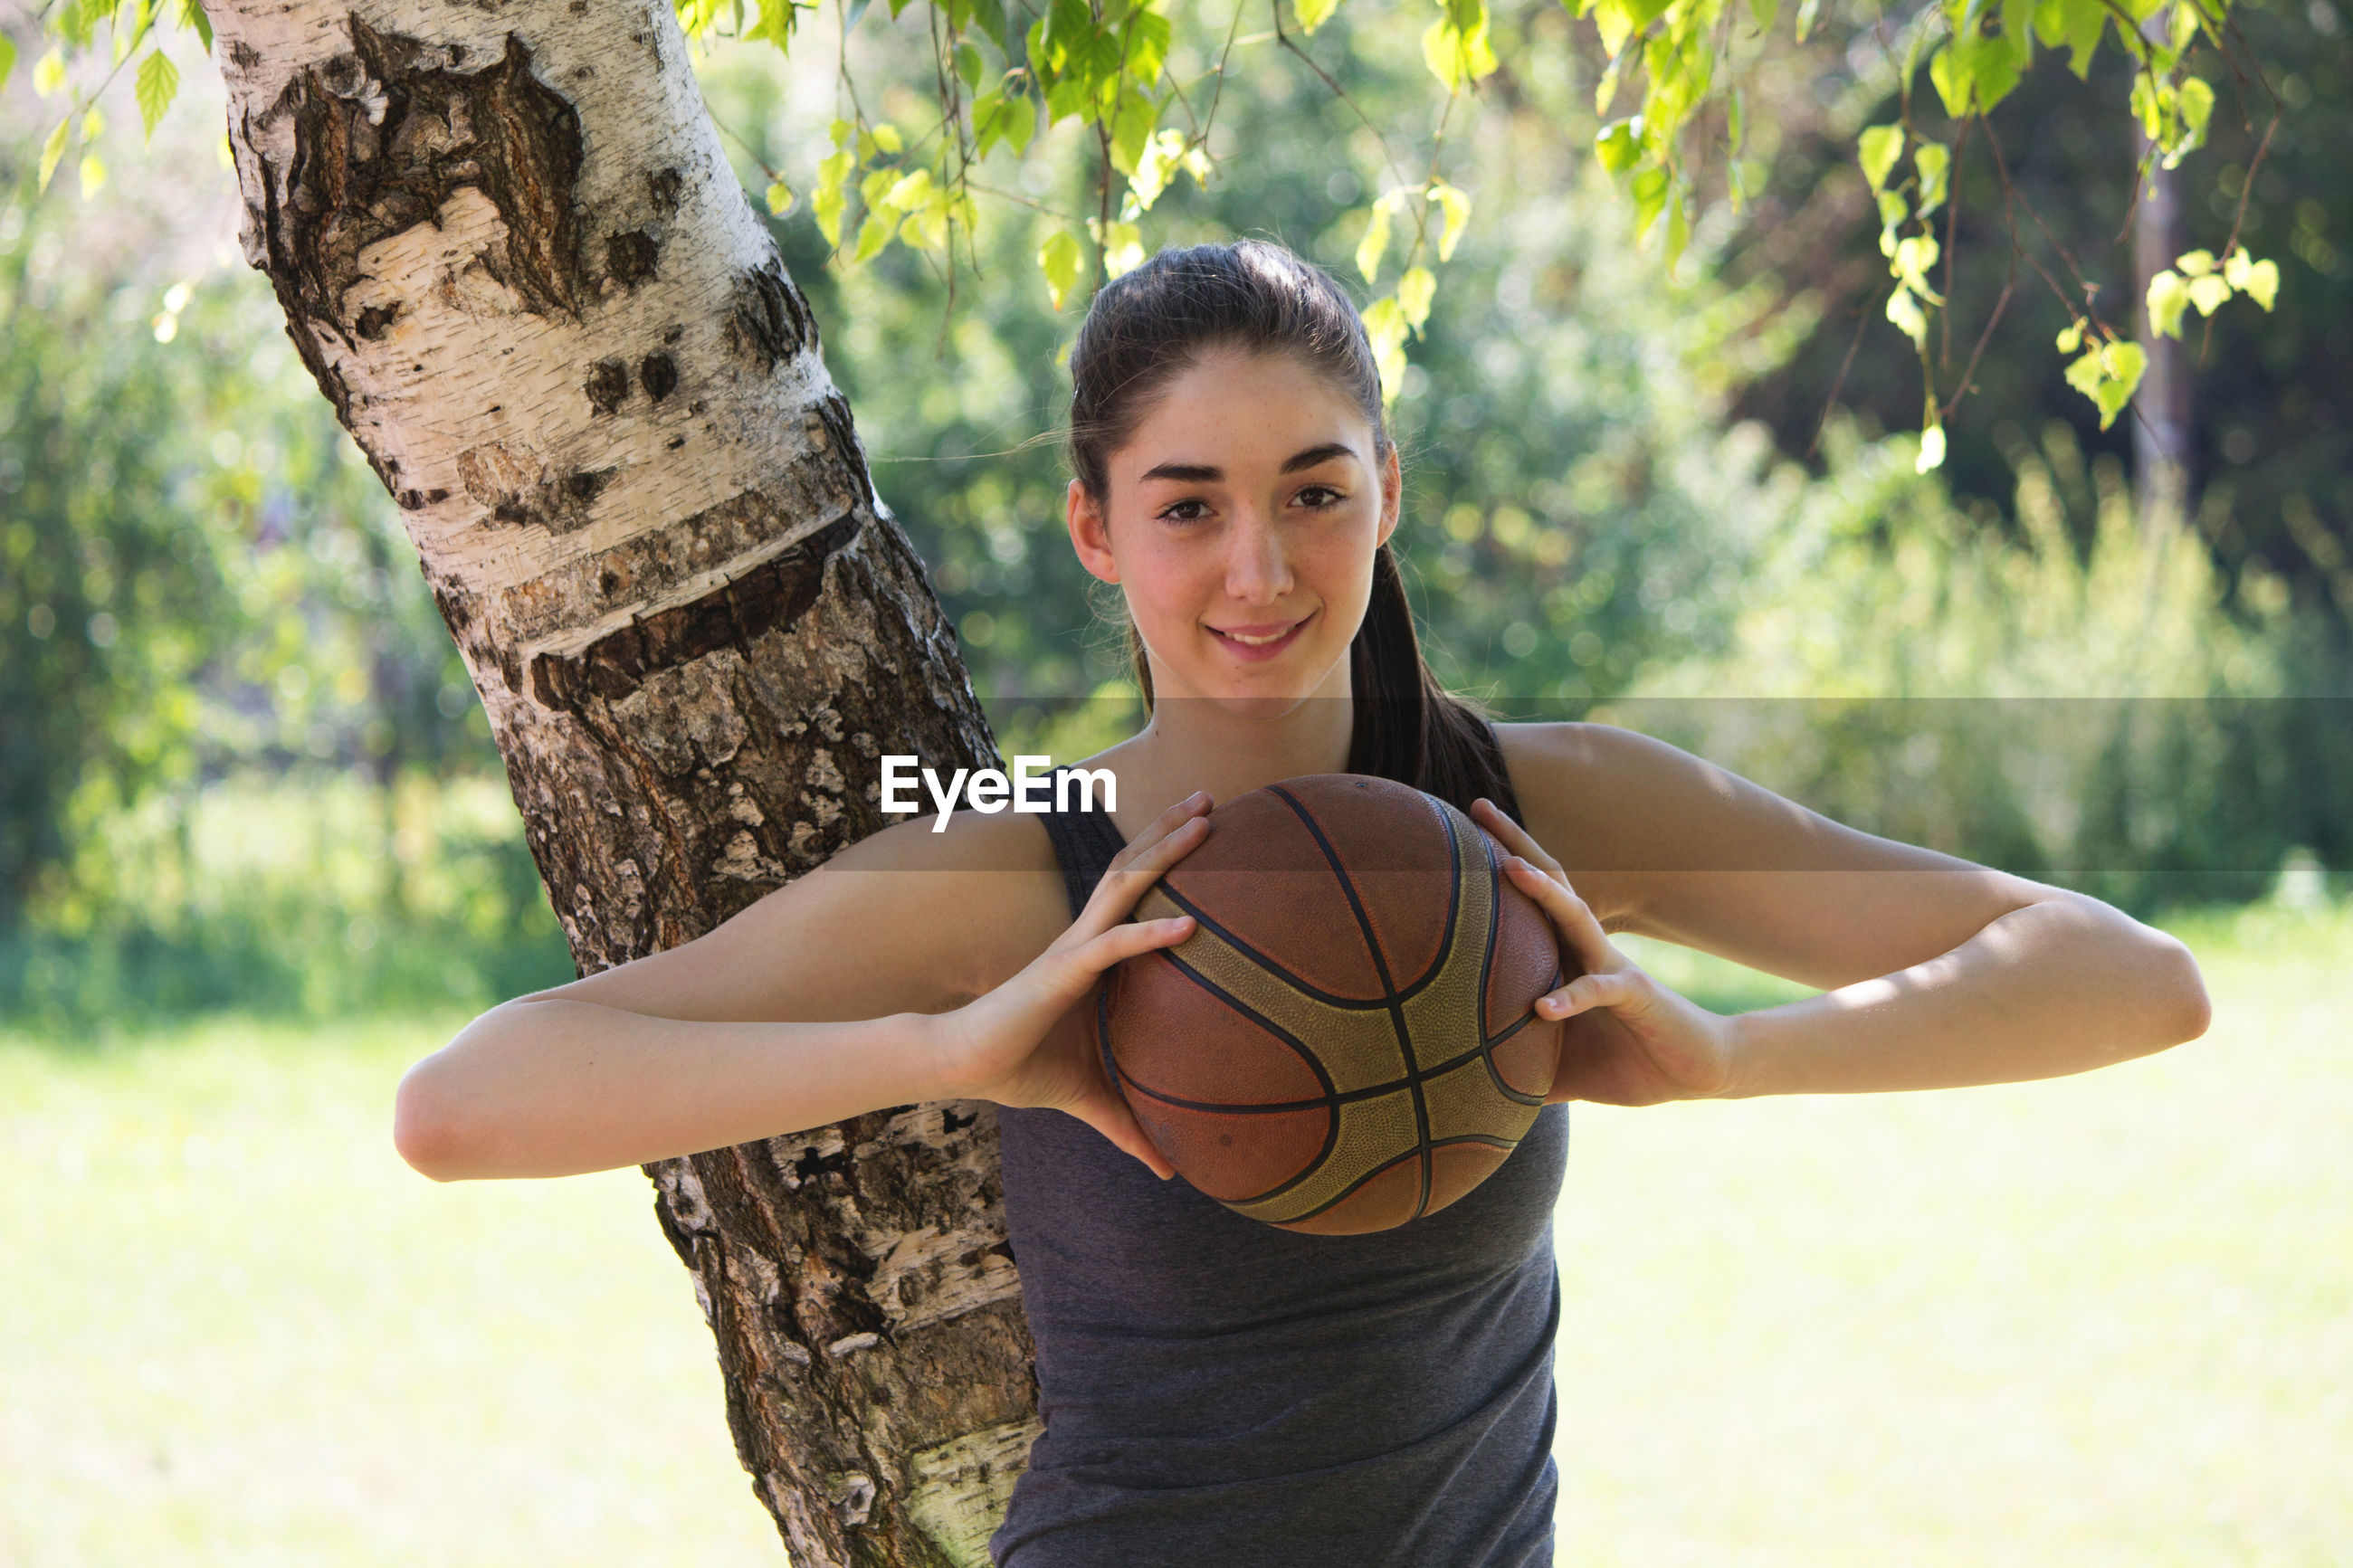 Portrait of smiling player holding basketball